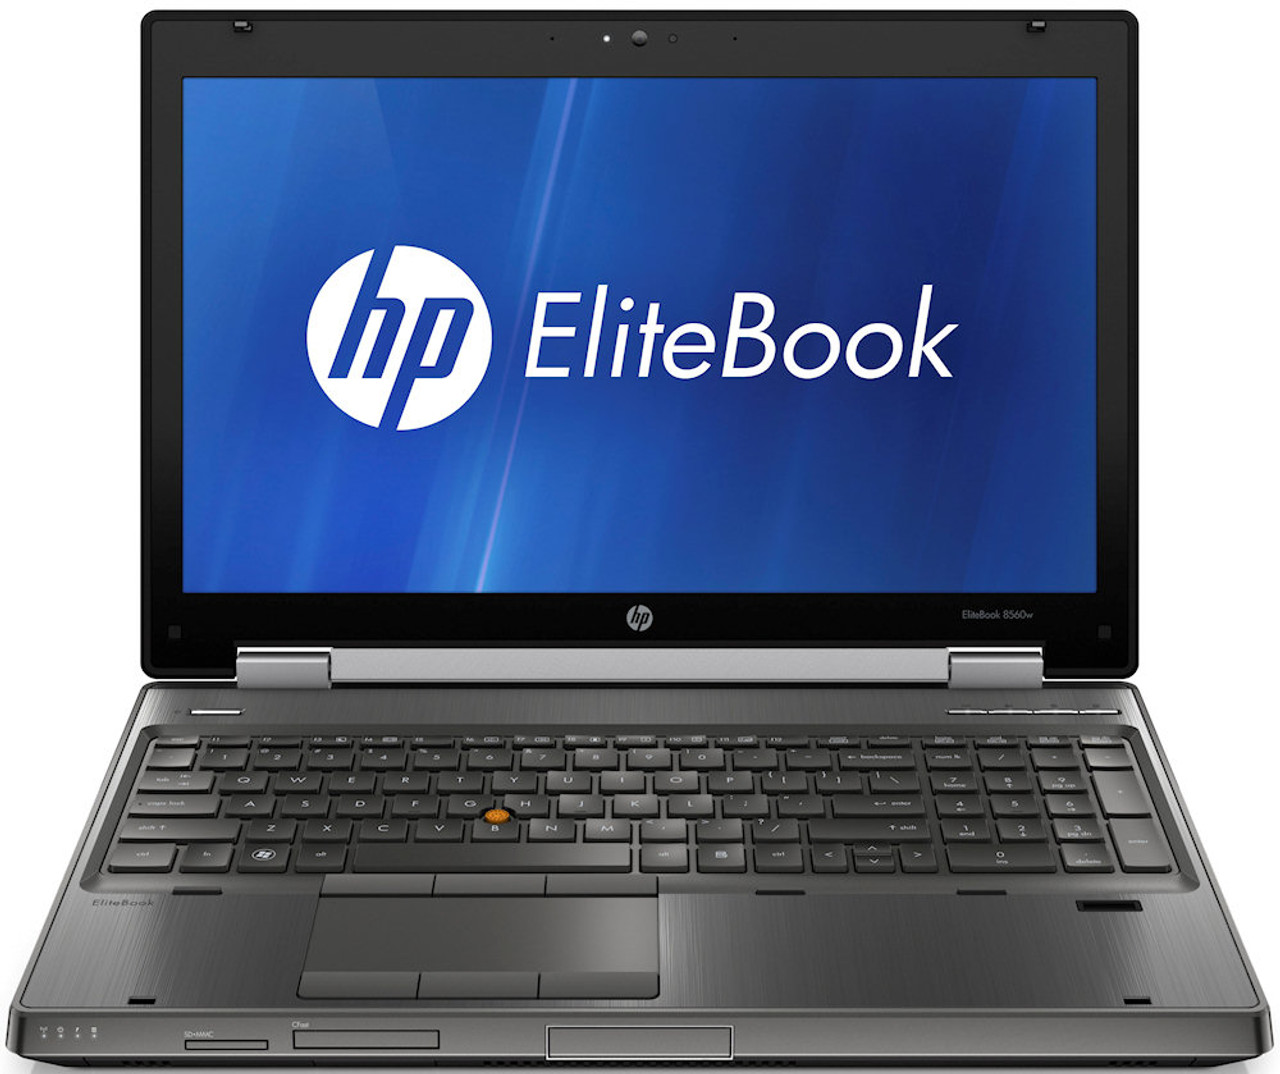 HP Compaq Elitebook 8560w Laptop Quad Core i7 2.20GHz, 8GB Ram, 250GB SSD, DVD-RW, Notebook Windows 10 Pro 64 Notebook